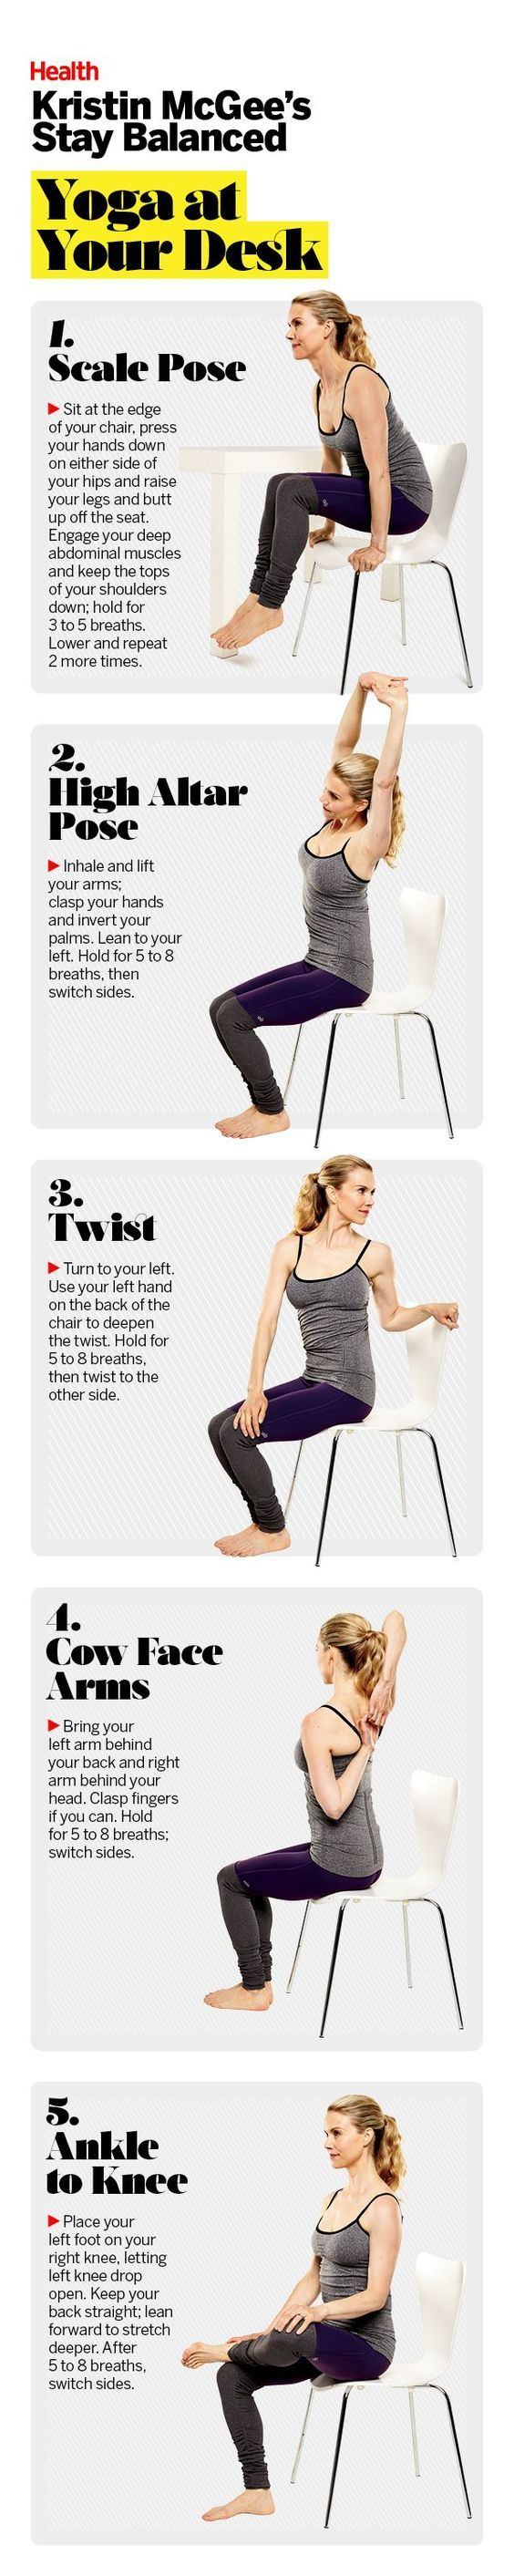 DownDog Healthy Living & Eating: Yoga at your desk with Kristin McGee. From the ...